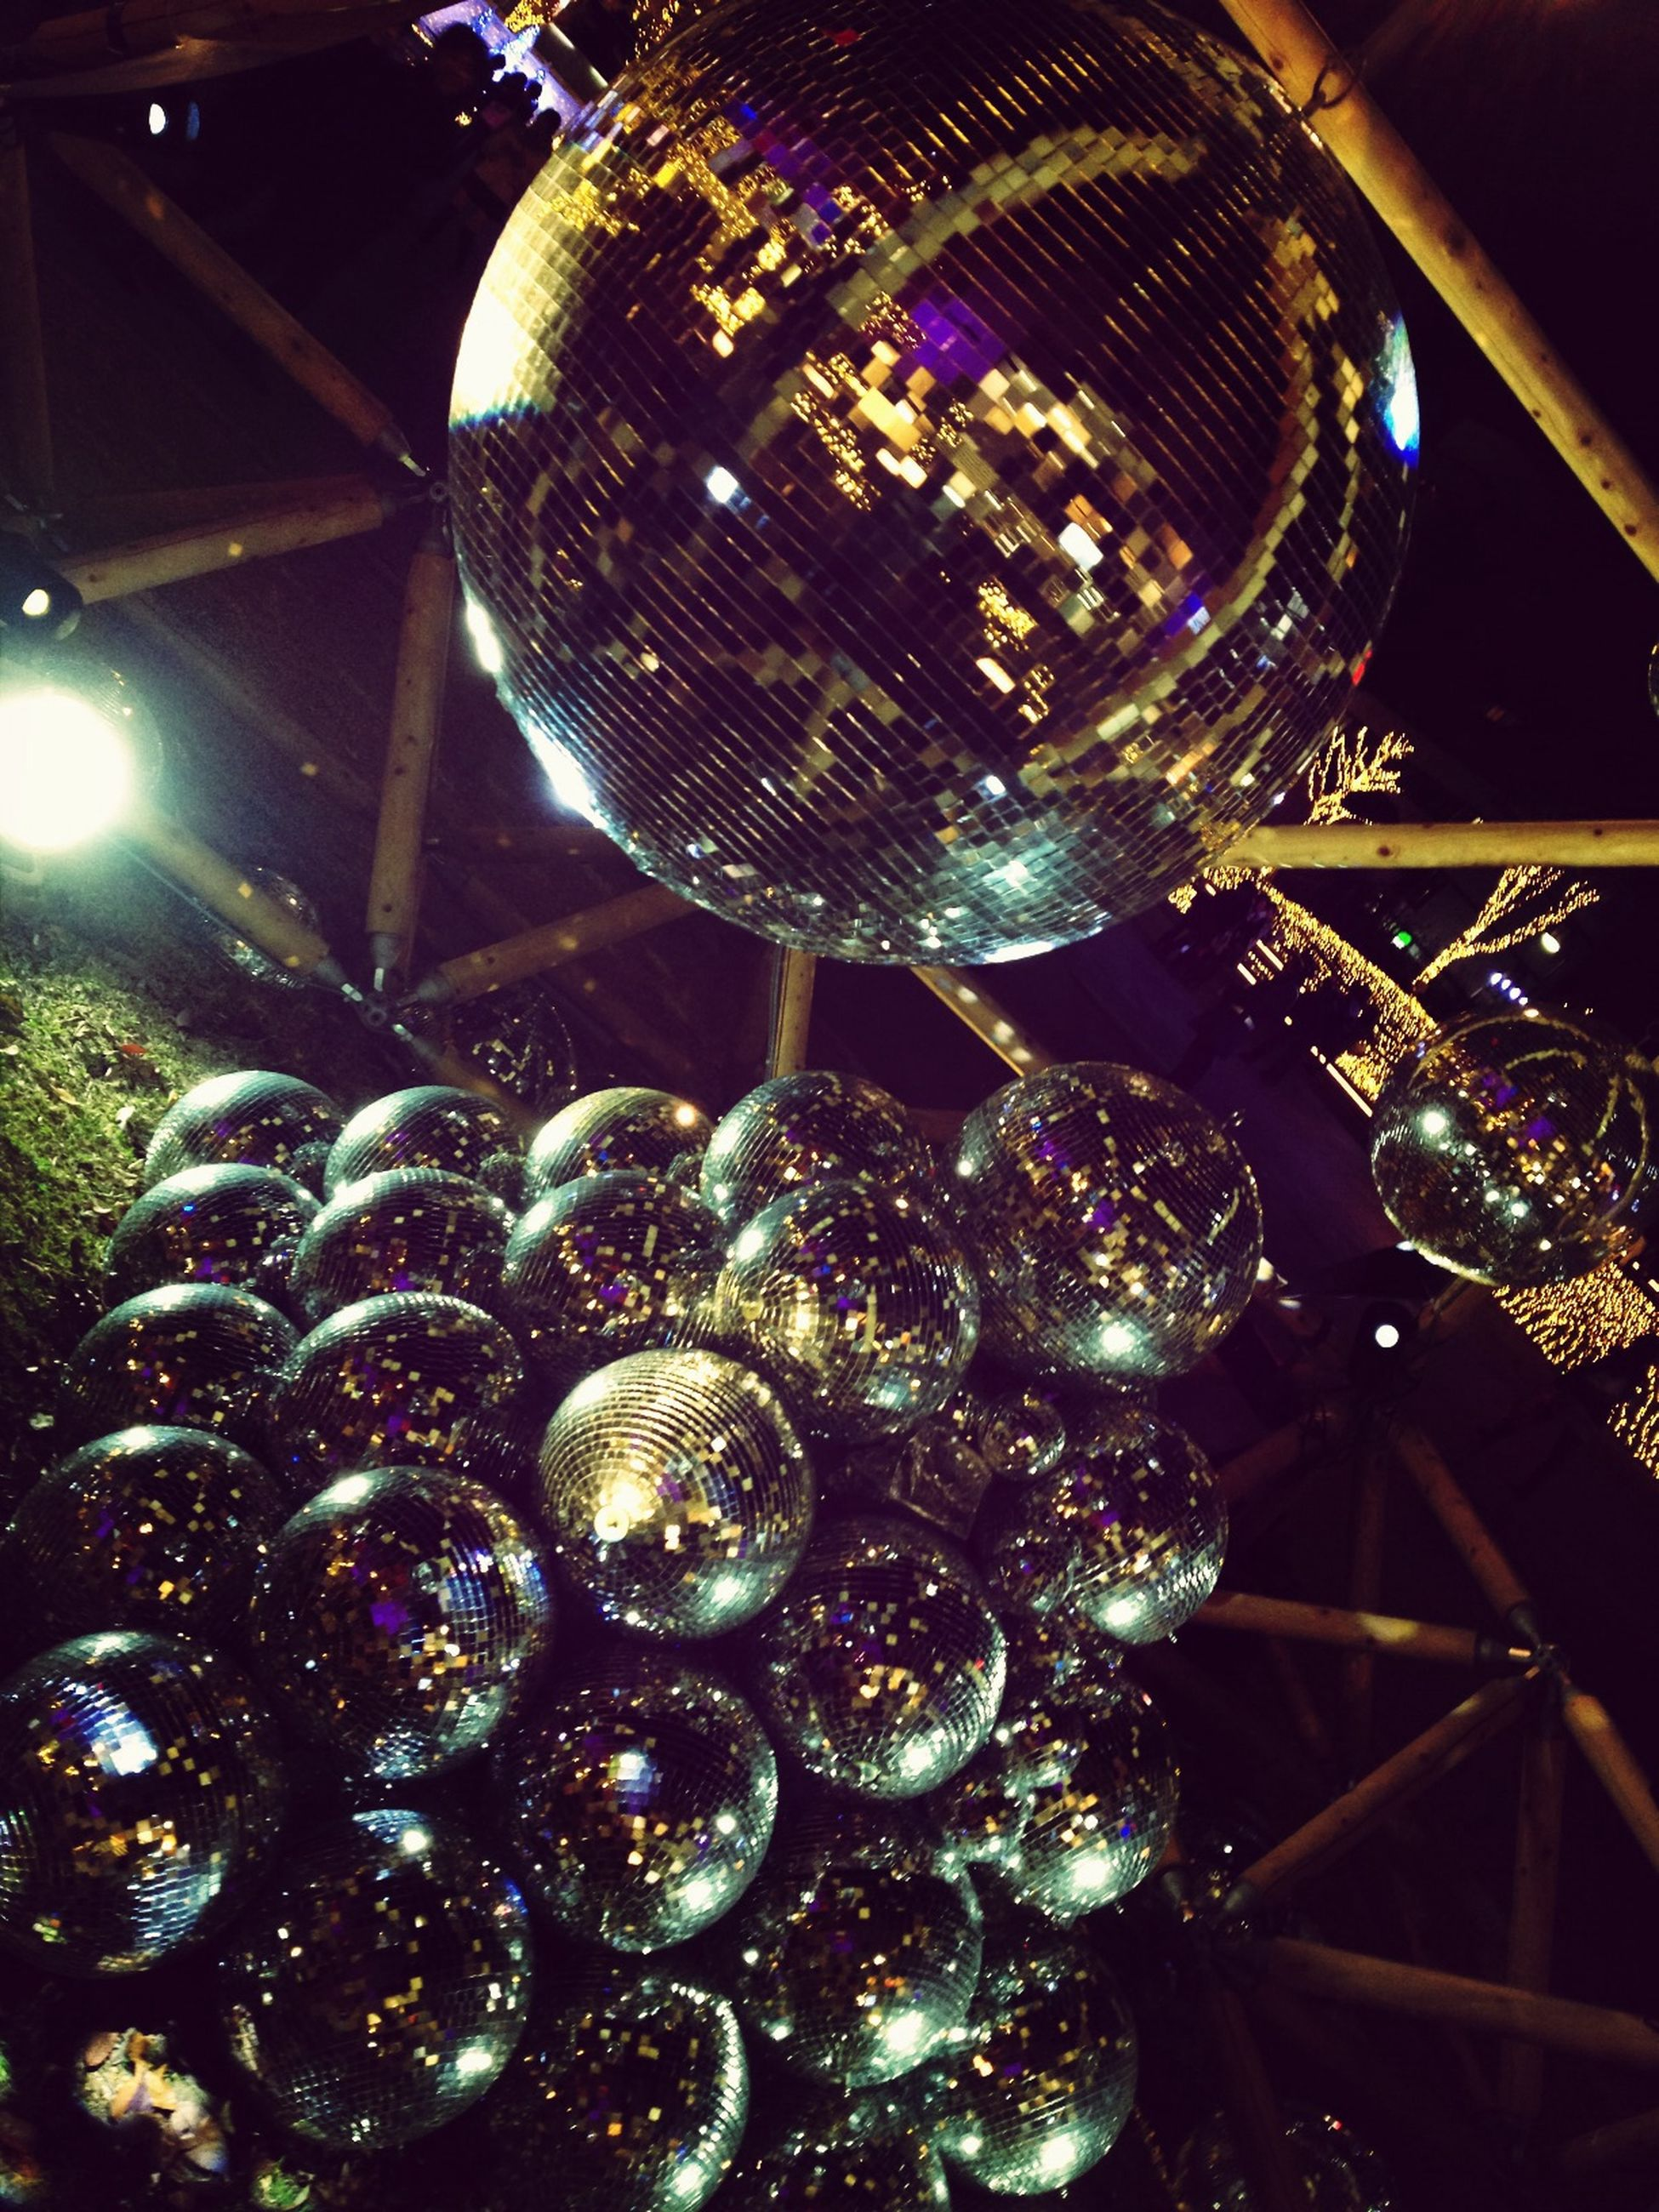 illuminated, decoration, indoors, night, hanging, low angle view, lighting equipment, pattern, christmas decoration, decor, celebration, christmas, design, sphere, christmas lights, christmas tree, abundance, ceiling, shiny, multi colored